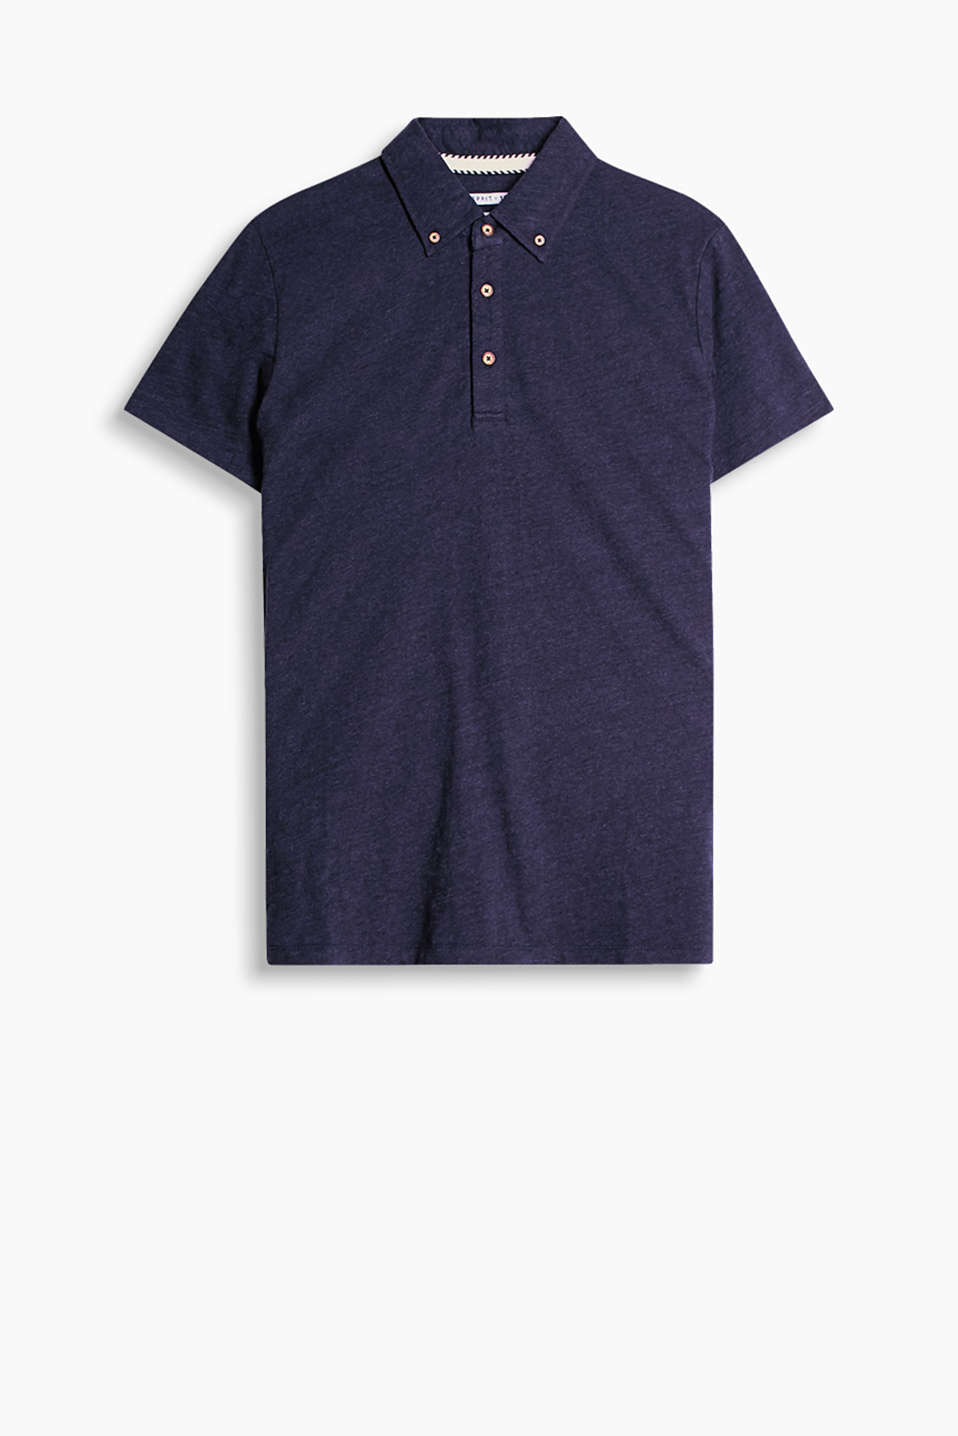 Polo shirt with button-down collar, made of 100% cotton